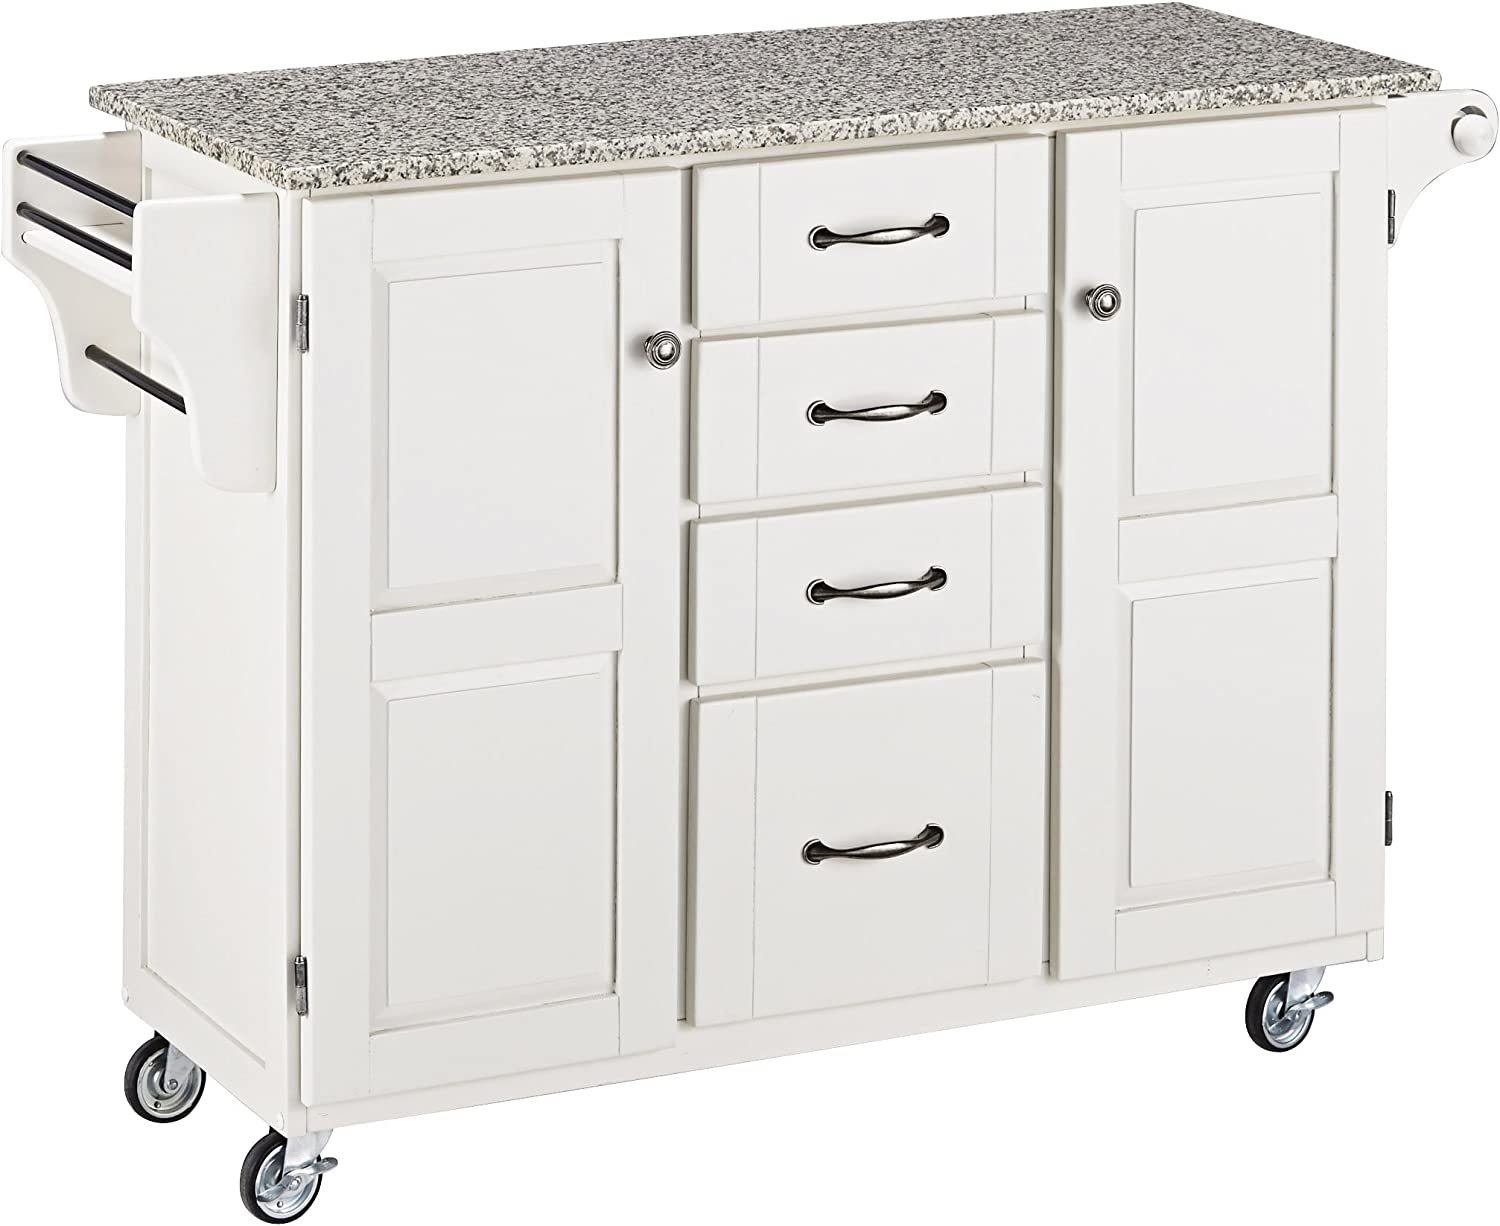 Create-a-Cart White 2 Door Cabinet Kitchen Cart with Salt and Pepper Granite Top by Home Styles